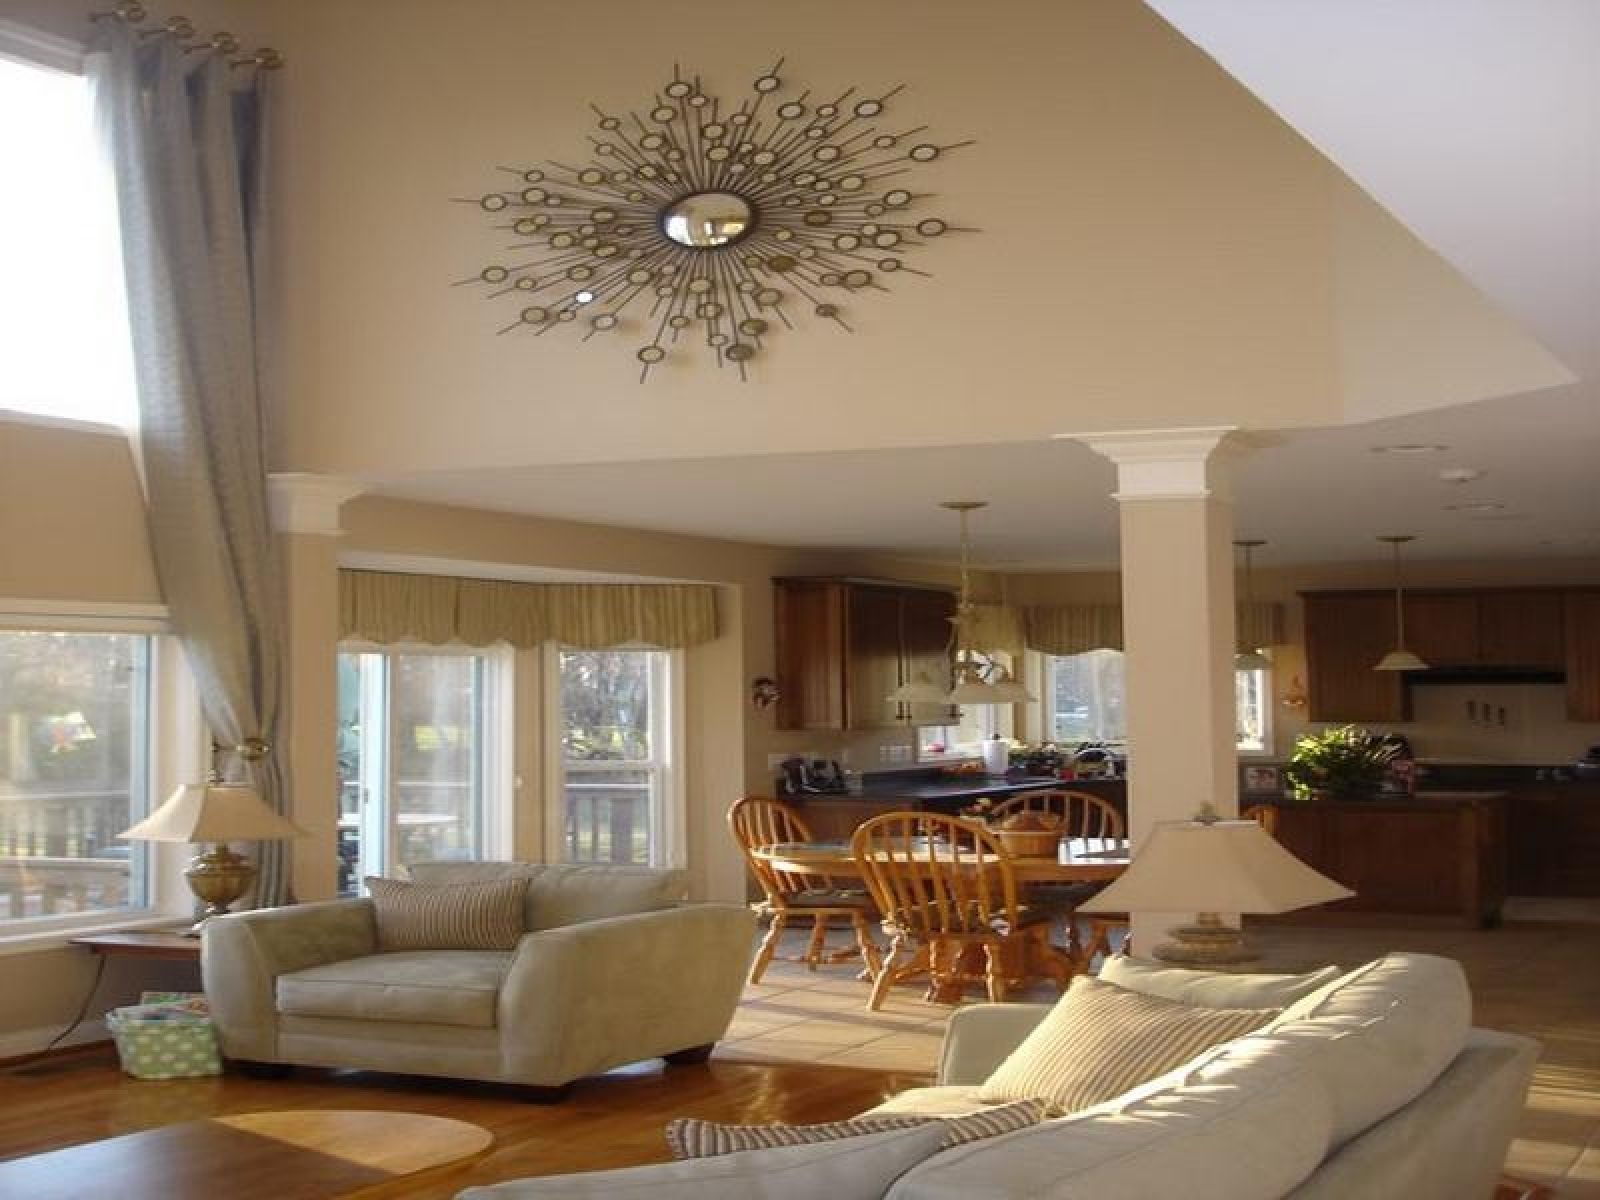 Winsome Beige Living Room Wall Theme Paint Attached Ornate Matched .